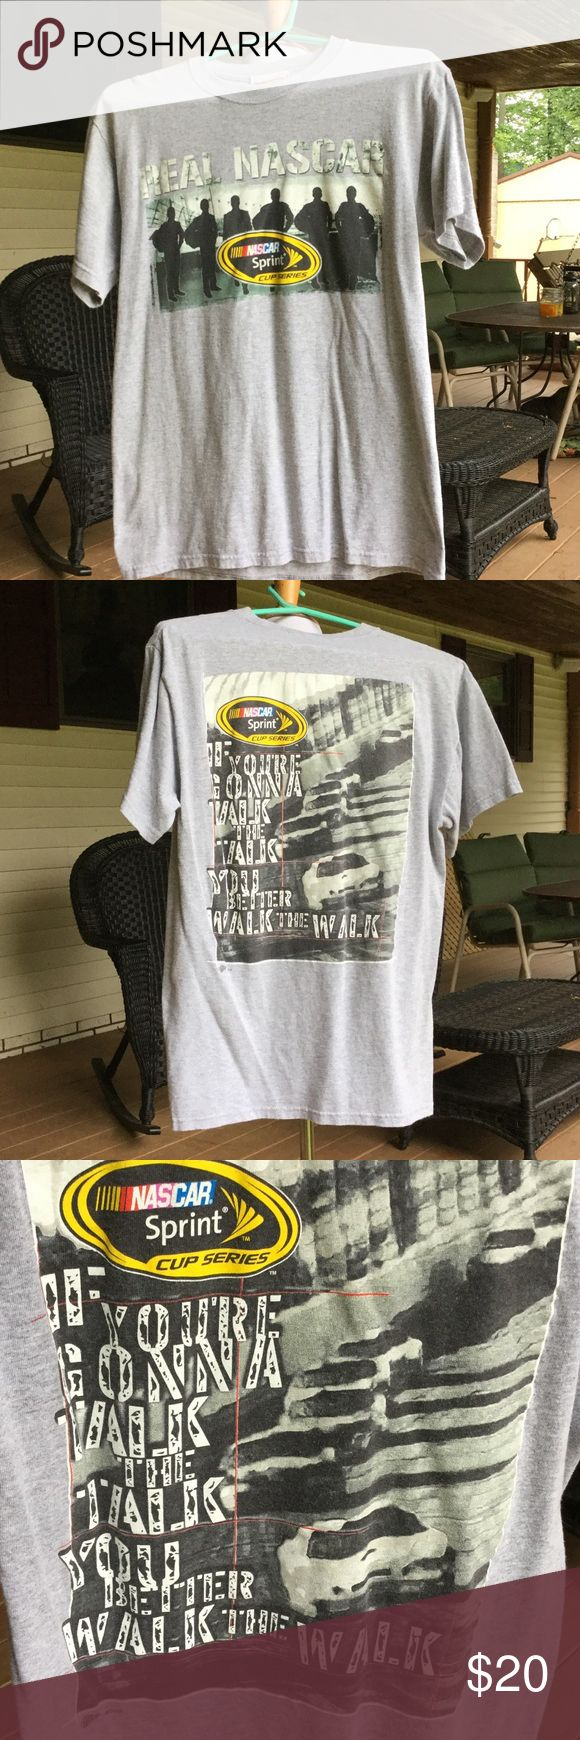 Nascar tshirt. Sprint cup series. Tshirt. Nascar sprint cup series. Size M.  Like new. winners circle Shirts Polos